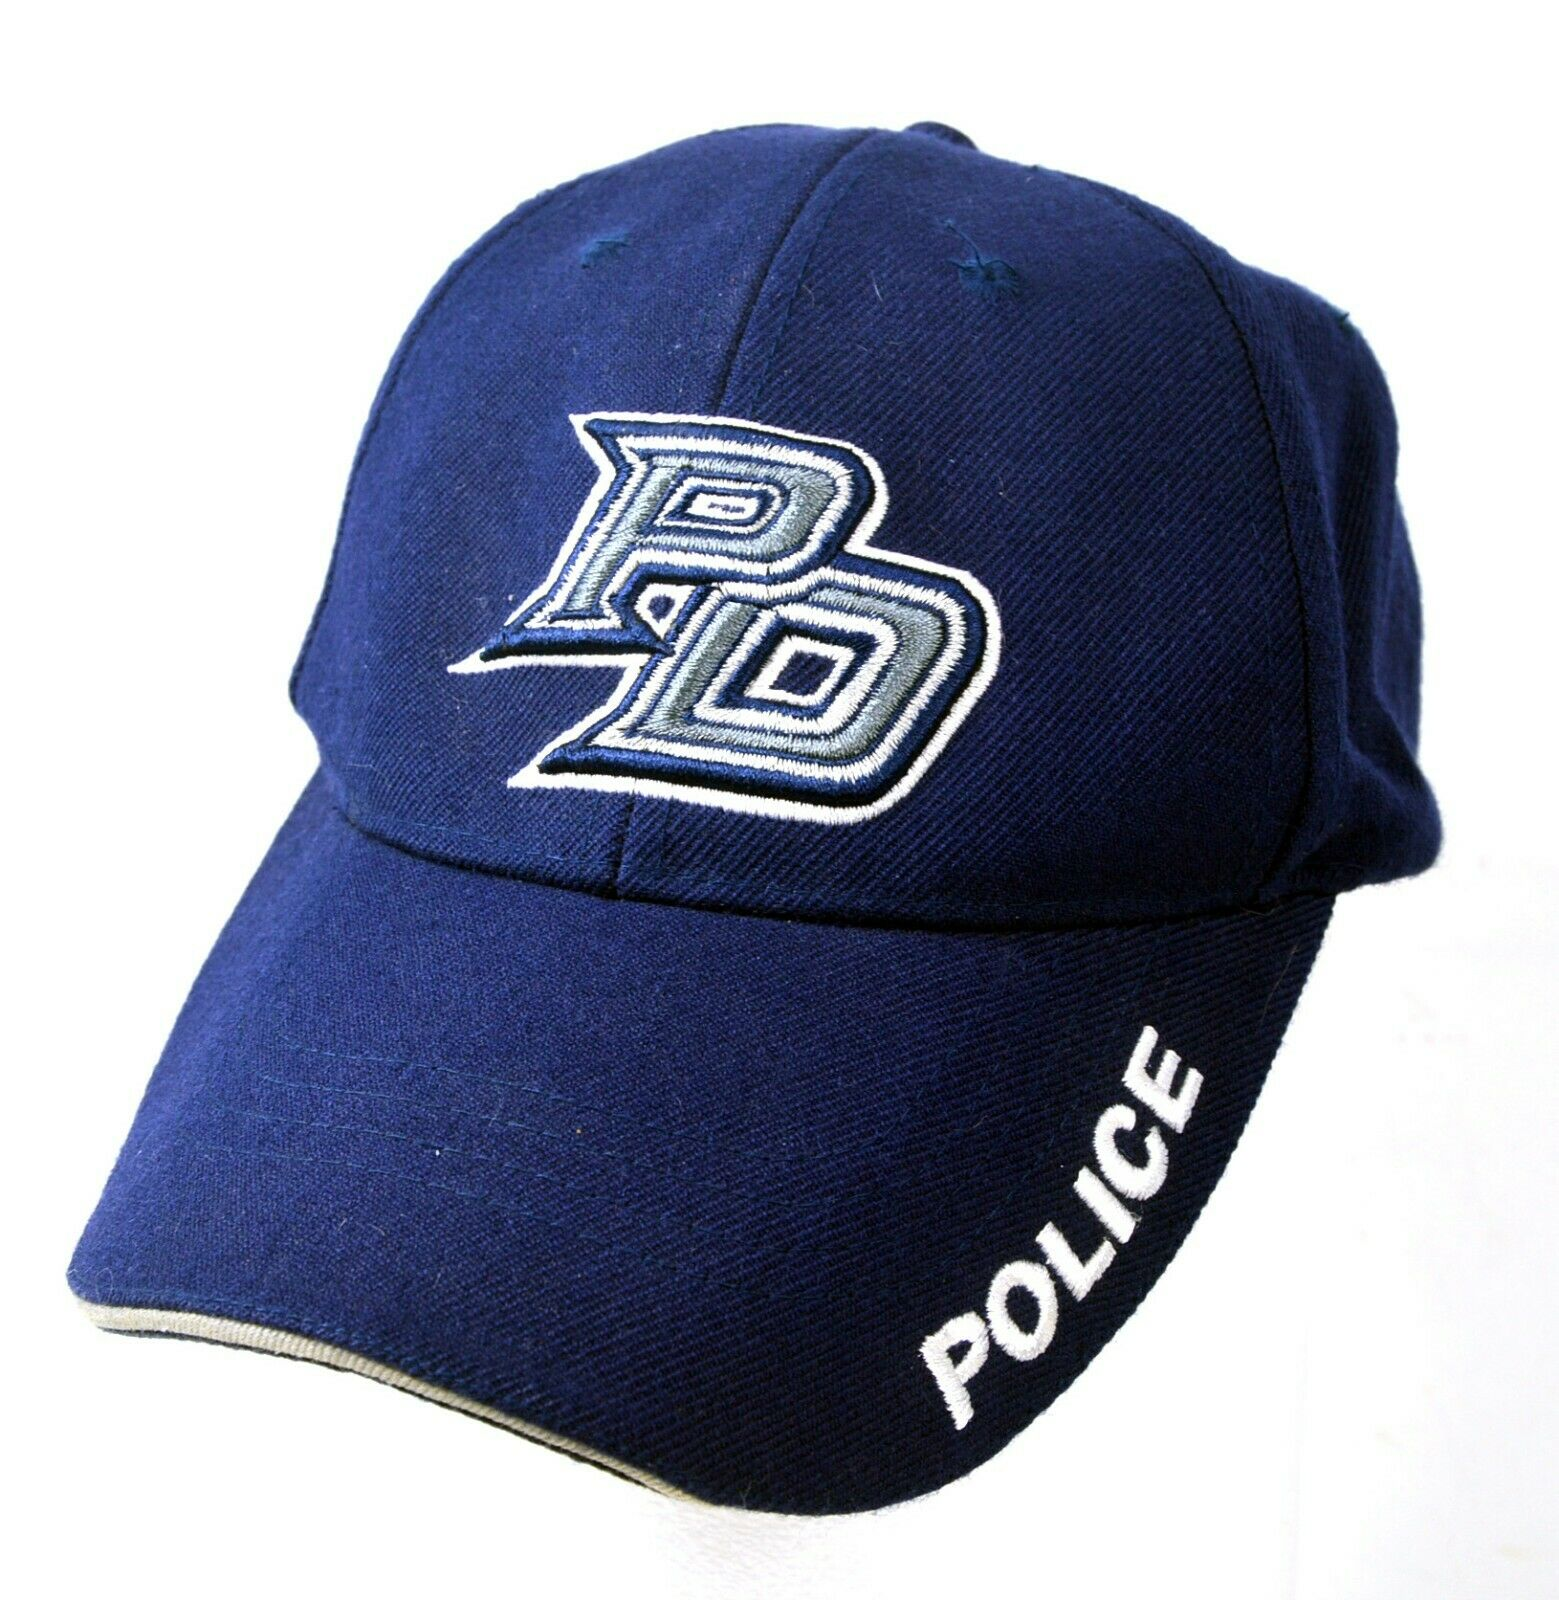 Police PD Hat - Adjustable Strapback OSFM - Blue